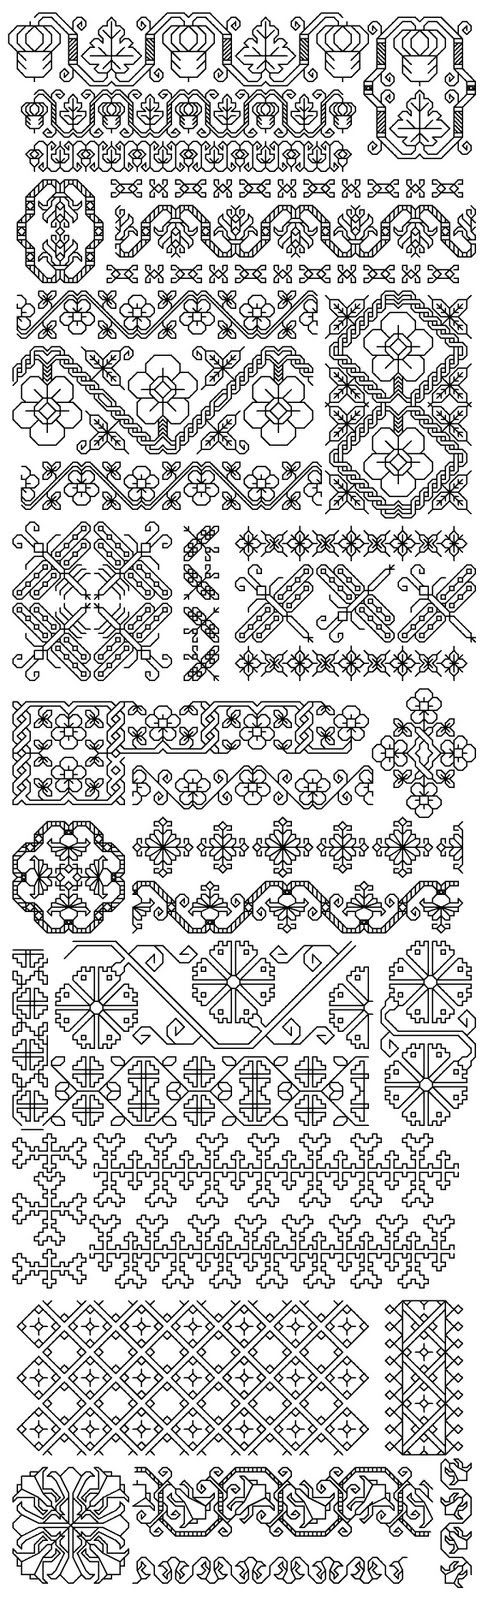 Blackwork designs - beautiful!